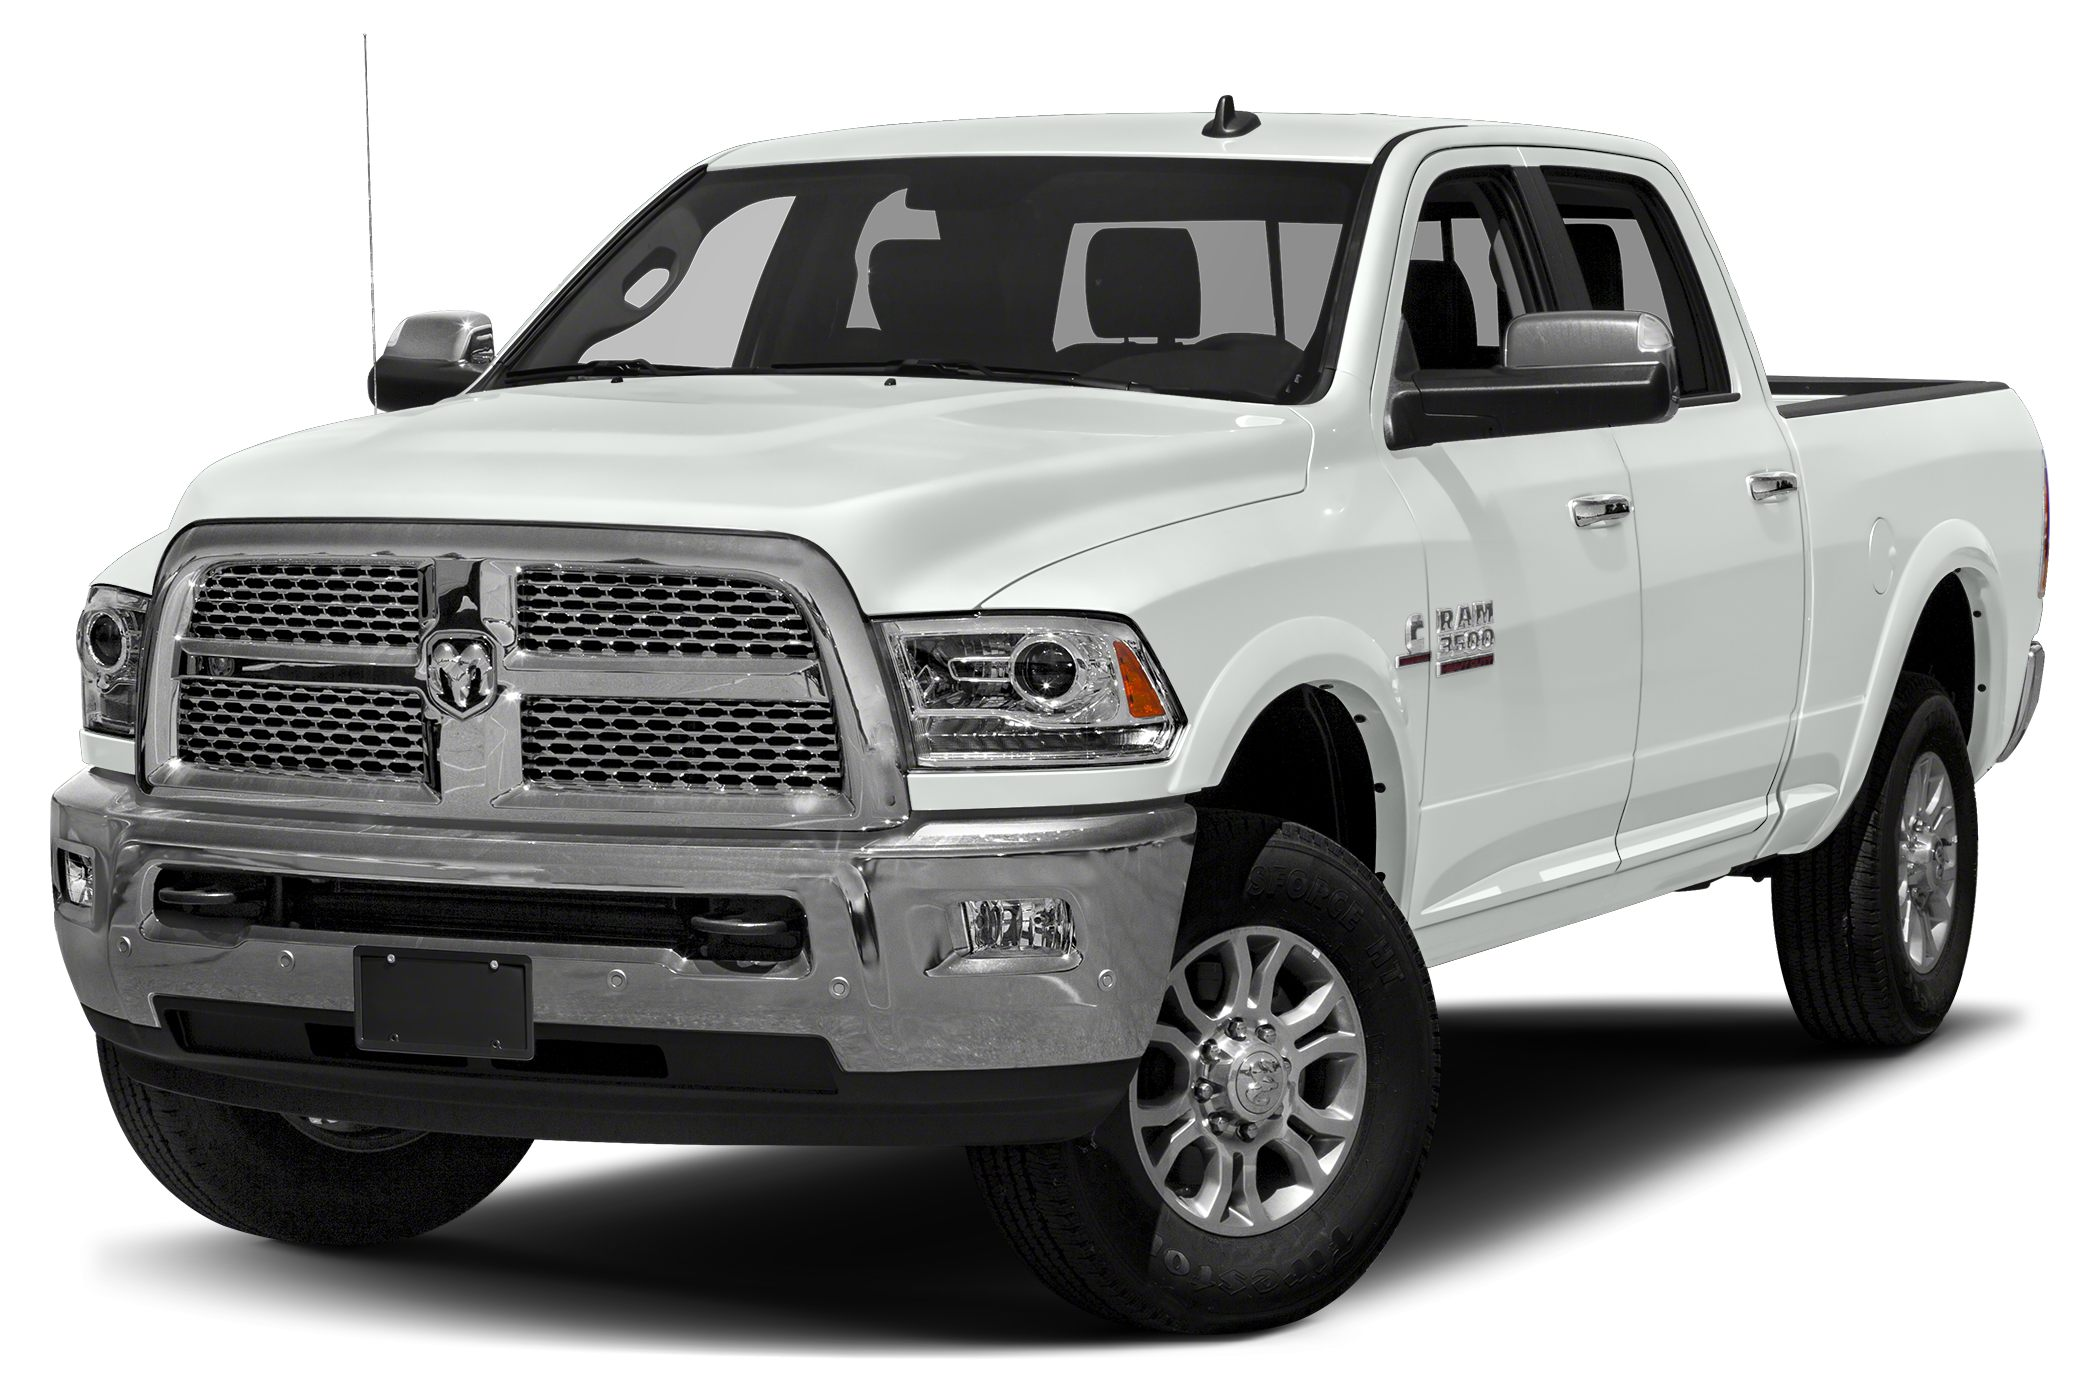 2017 RAM 3500 Laramie 2017 Ram 3500 Laramie Color Bright White Clearcoat Stock D17264 VIN